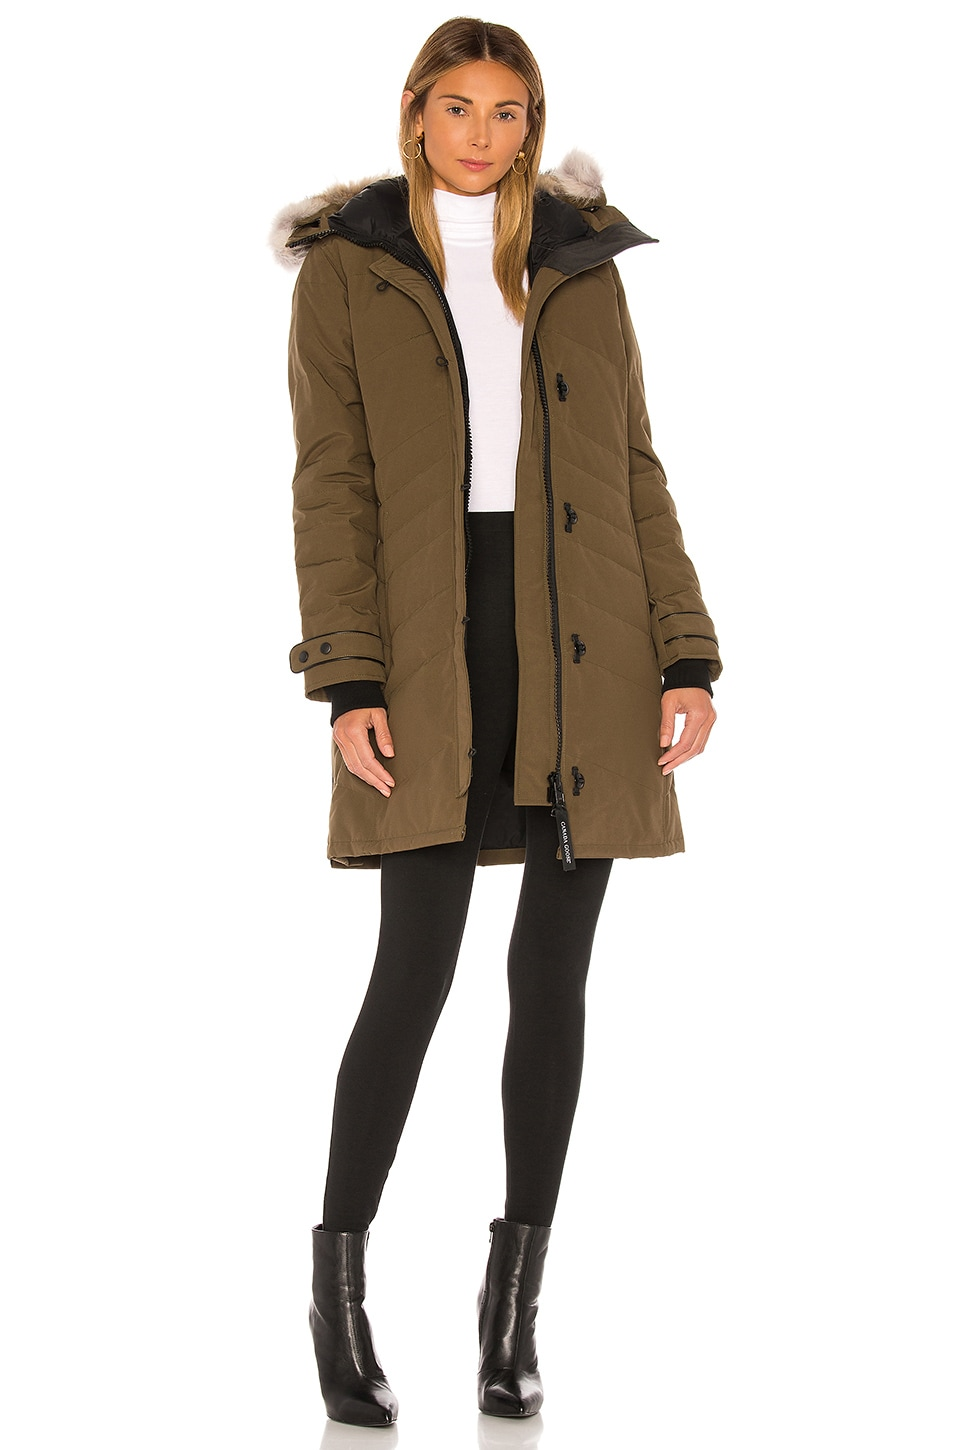 Canada Goose Lorette Parka with Removable Fur Ruff in Military Green